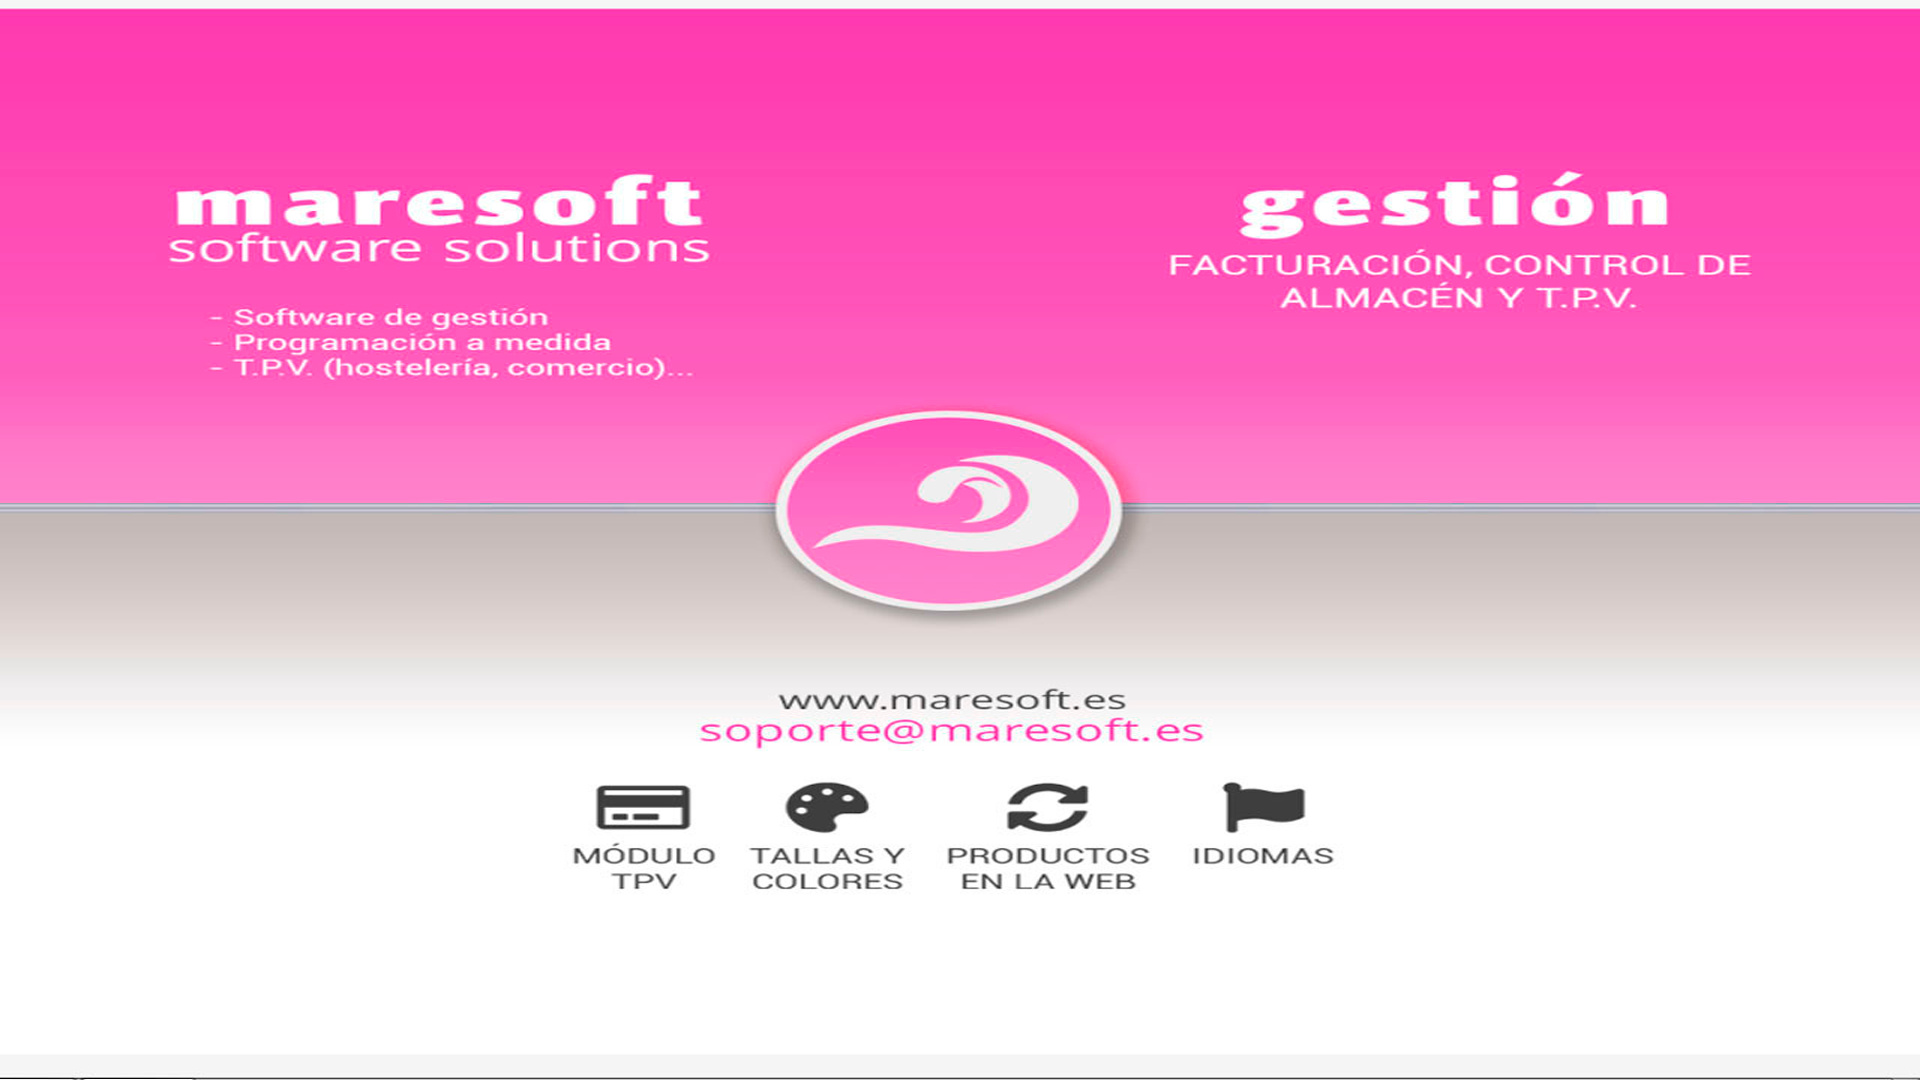 MARESOFT Software Solutions